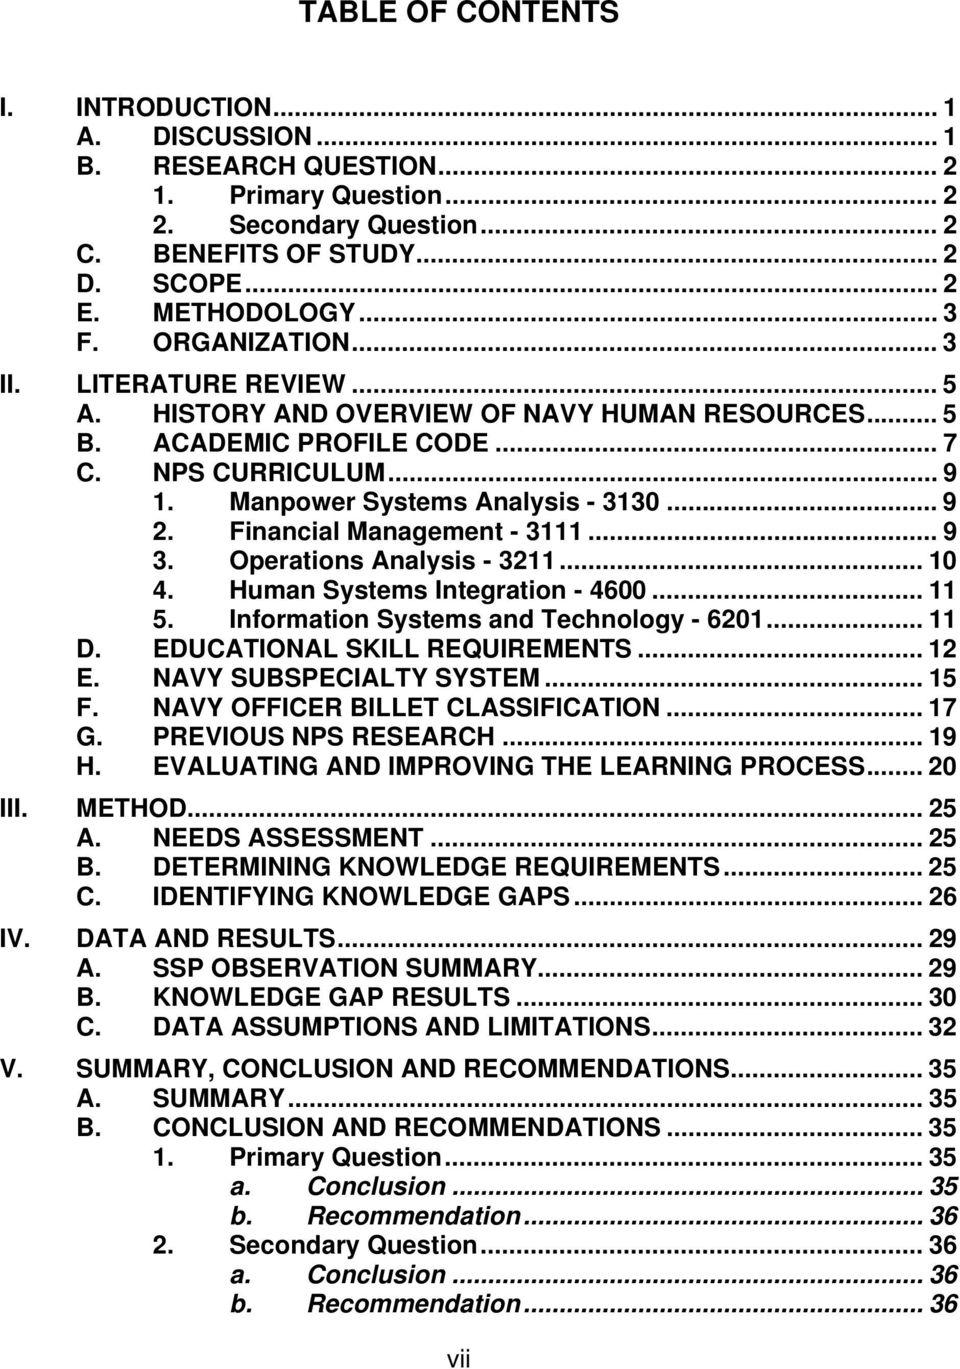 Financial Management - 3111... 9 3. Operations Analysis - 3211... 10 4. Human Systems Integration - 4600... 11 5. Information Systems and Technology - 6201... 11 D. EDUCATIONAL SKILL REQUIREMENTS.